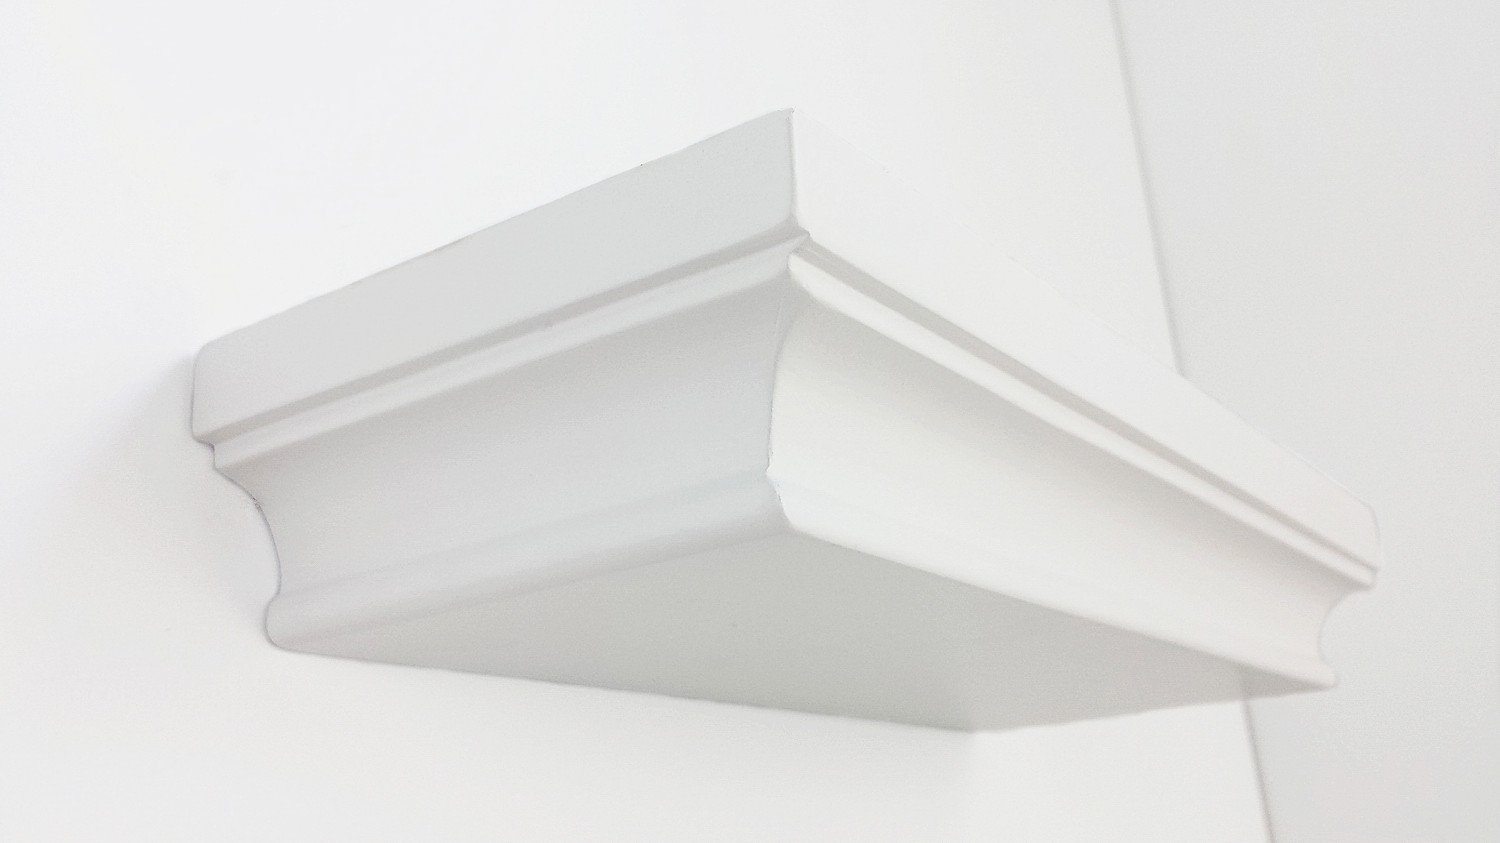 HAO ALWAYS DO BETTER Set of 3 Small Size Floating Wall Shelf 4 Inch Showcase White ER Mall